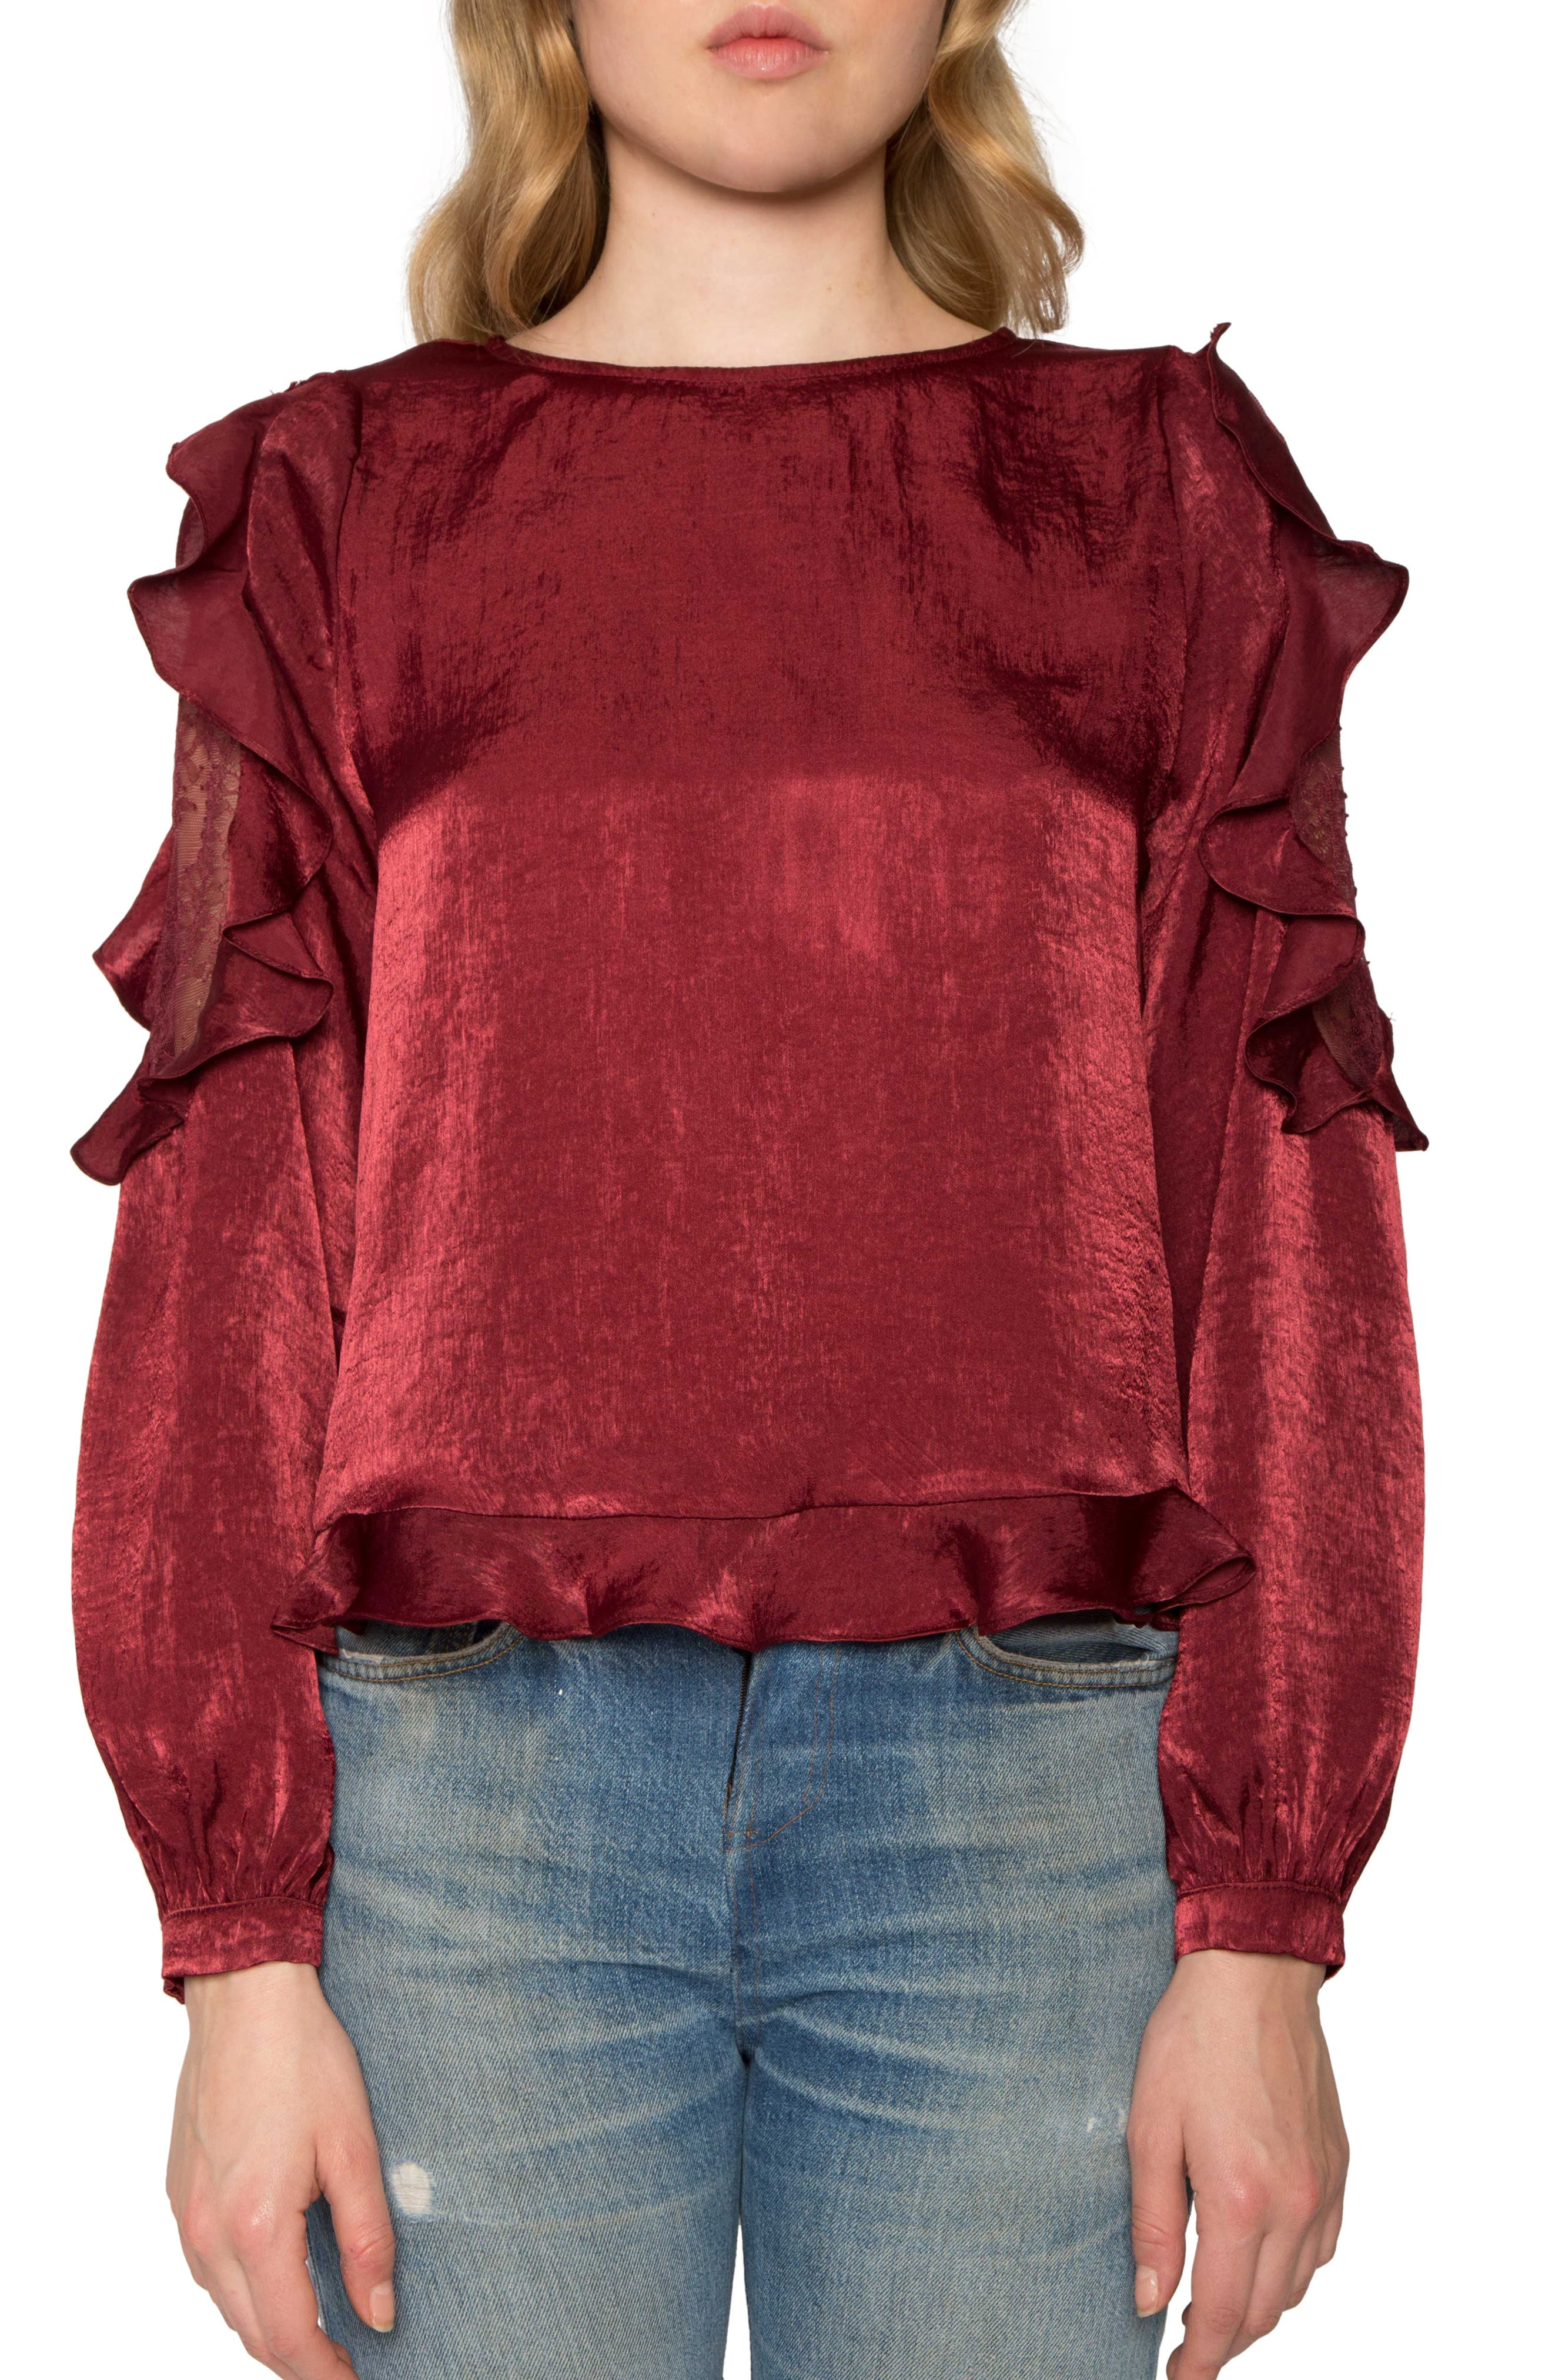 Alternate Image 1 Selected - Willow & Clay Lace Detail Ruffle Blouse